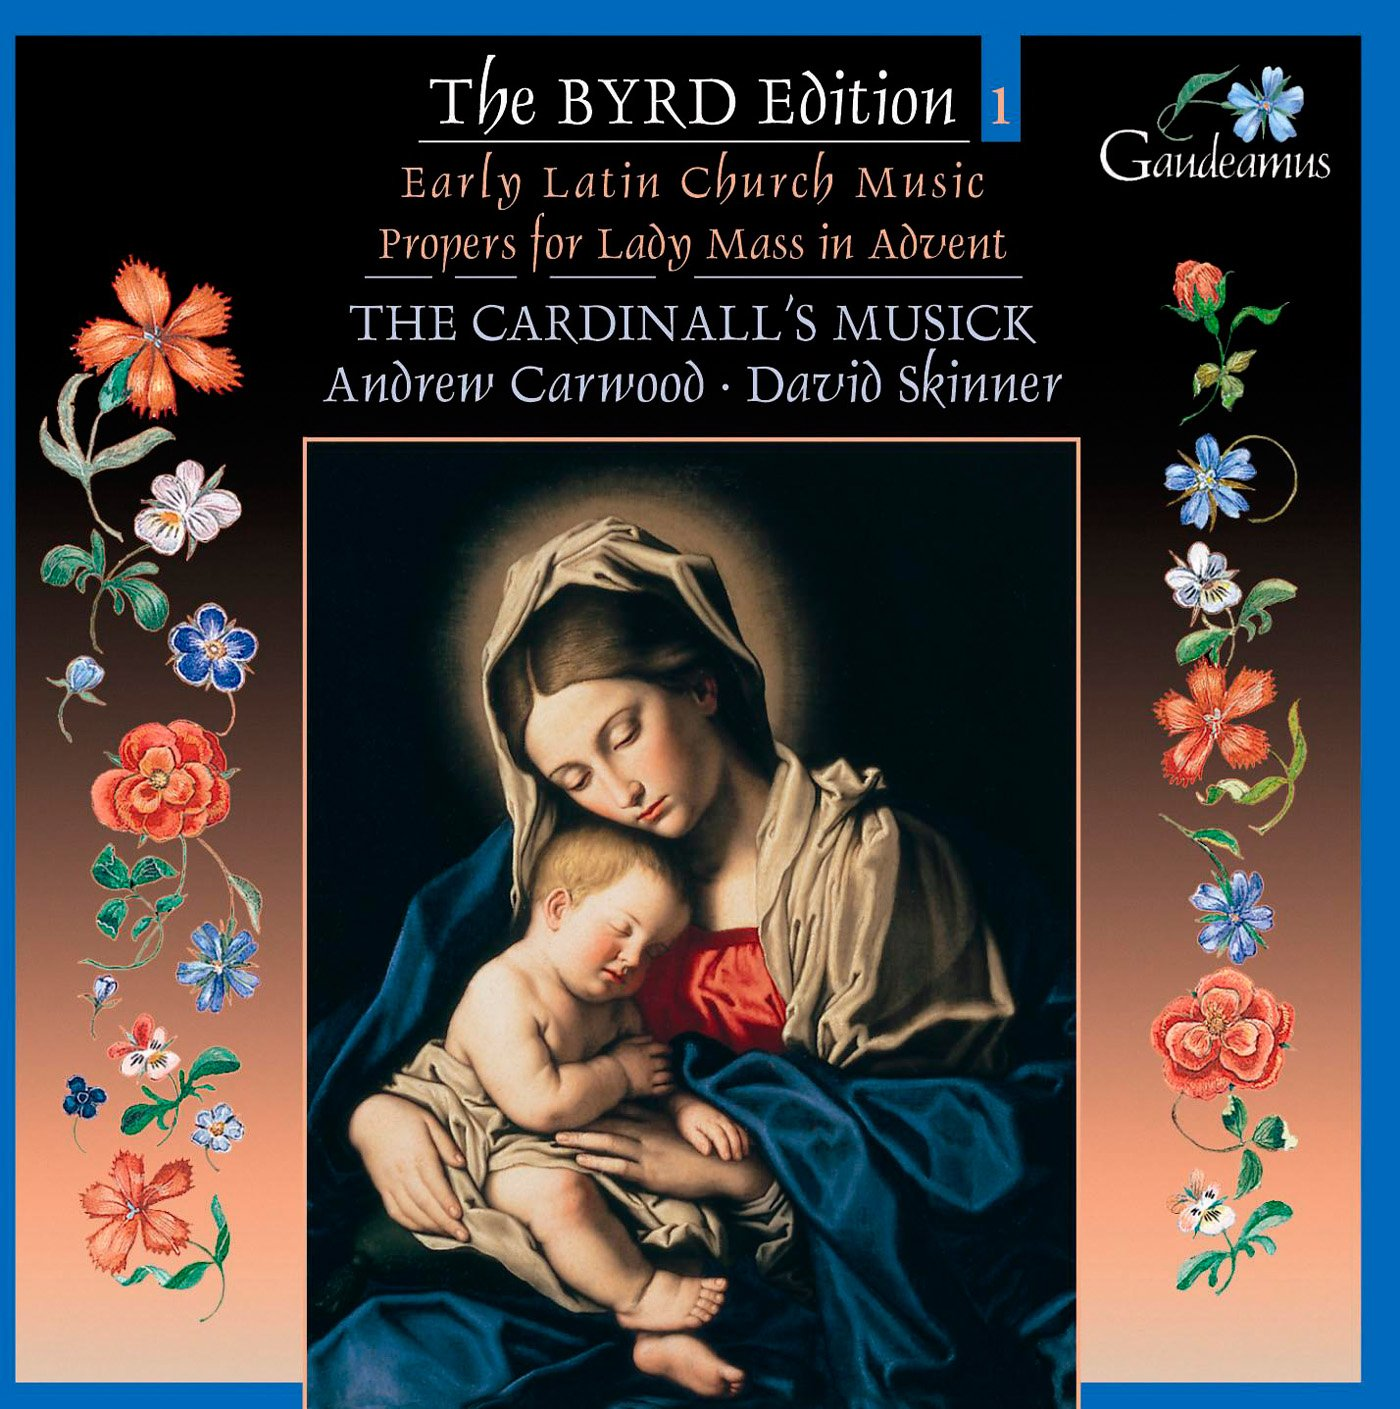 The Byrd Edition, Vol. 1: Early Latin Church Music & Propers for Lady Mass in Advent